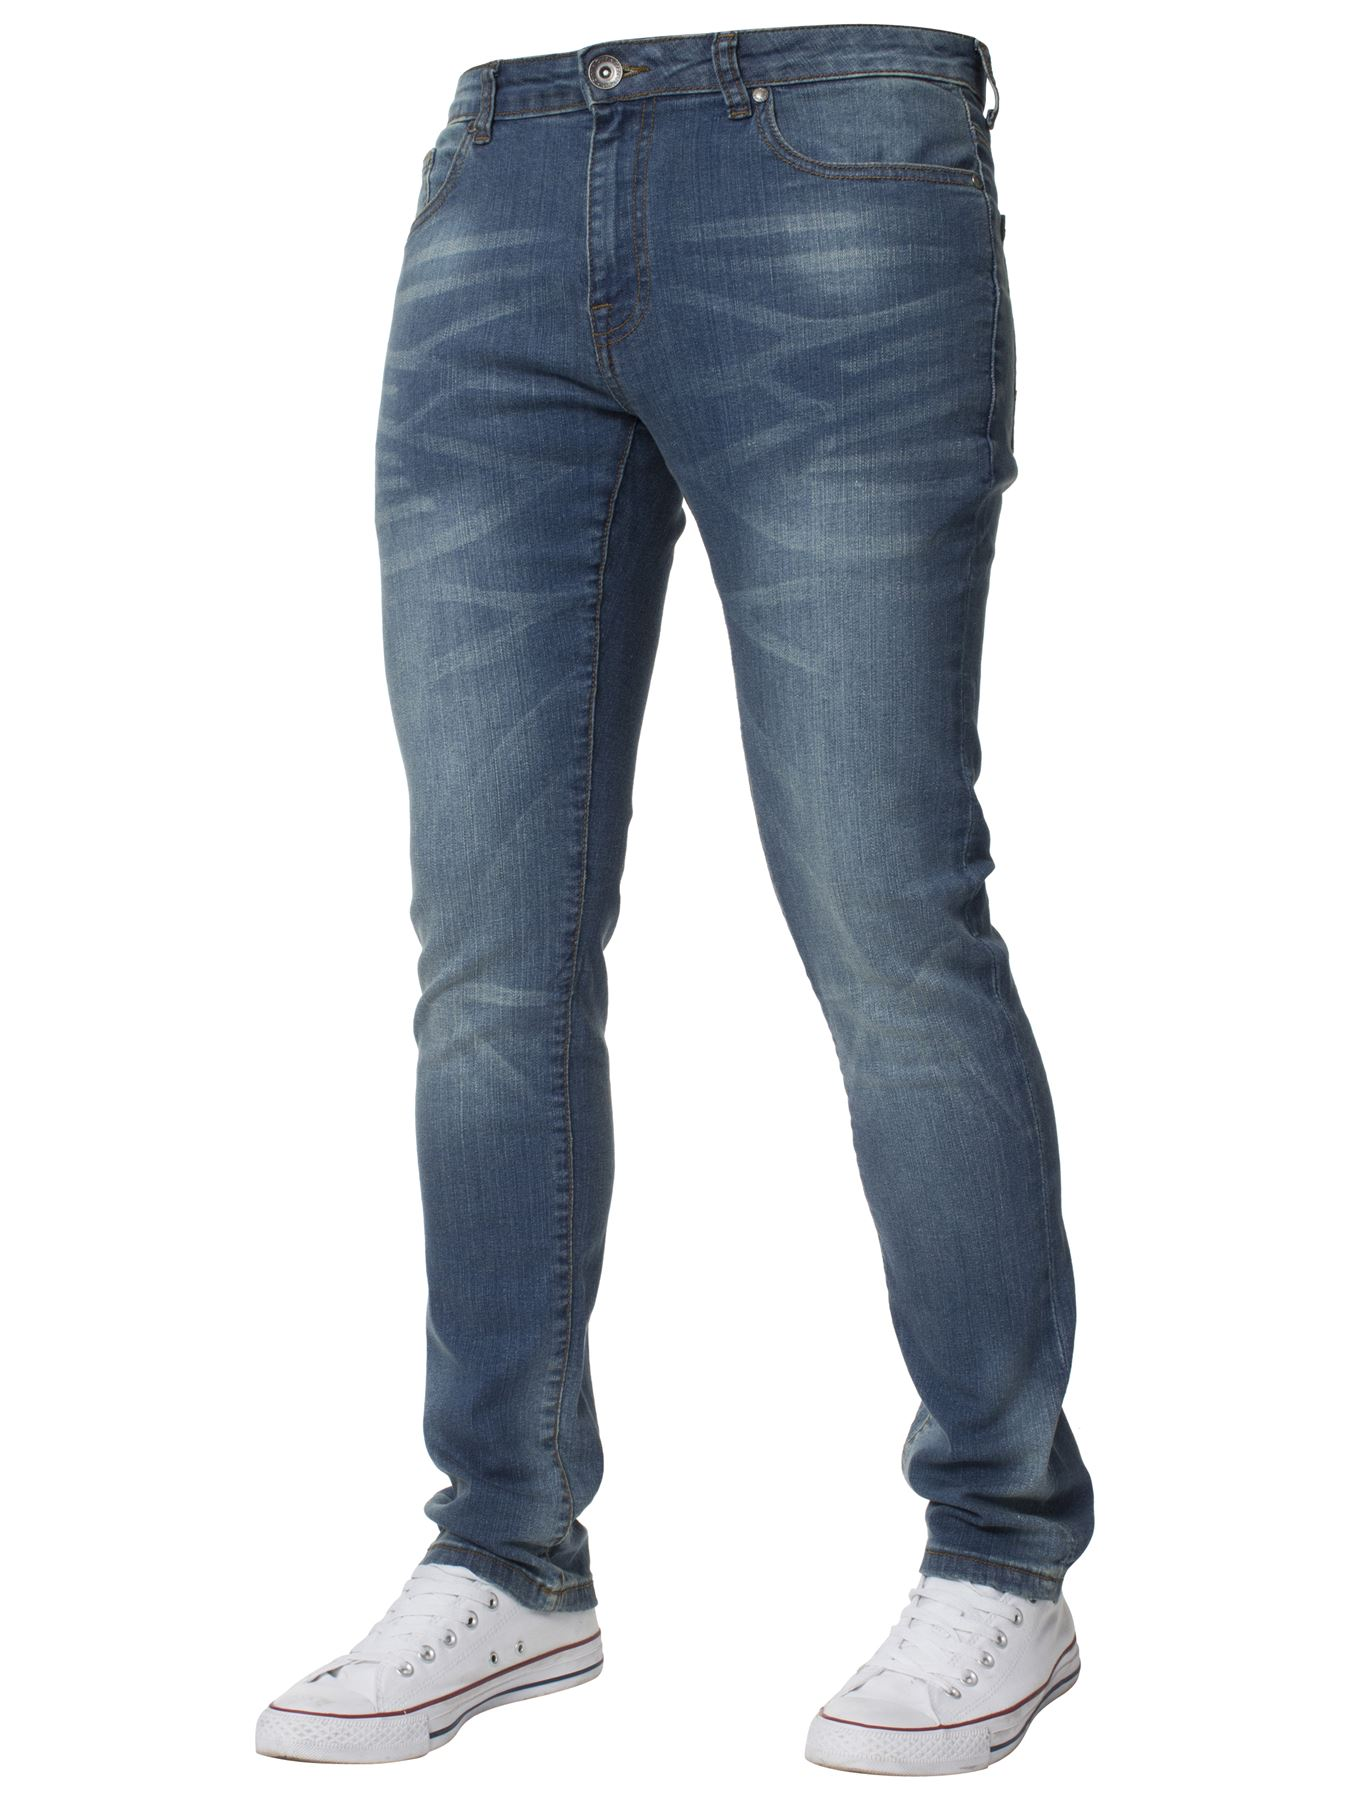 Kruze-Mens-Skinny-Stretch-Flex-Denim-Jeans-Slim-Fit-Trouser-Pants-Big-King-Sizes thumbnail 21